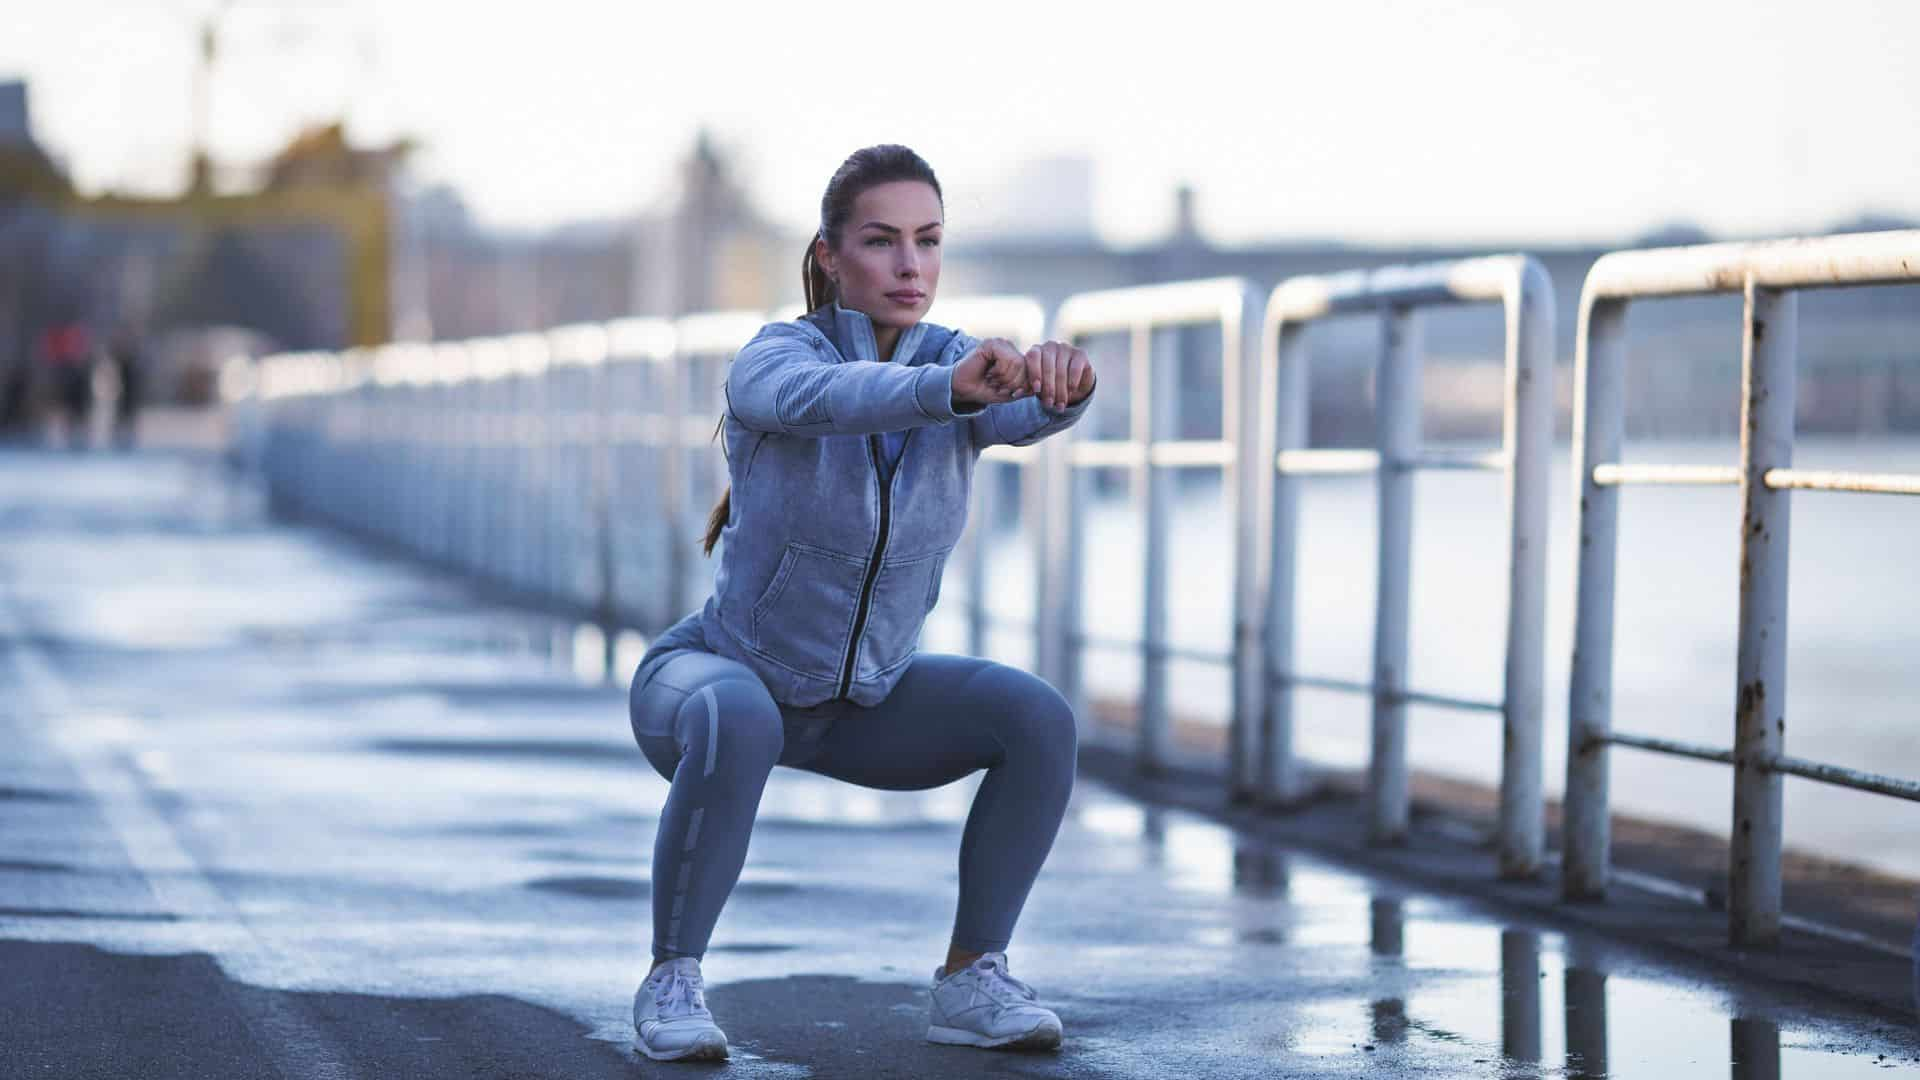 young woman exercising outdoors royalty free image 649970260 1543609738